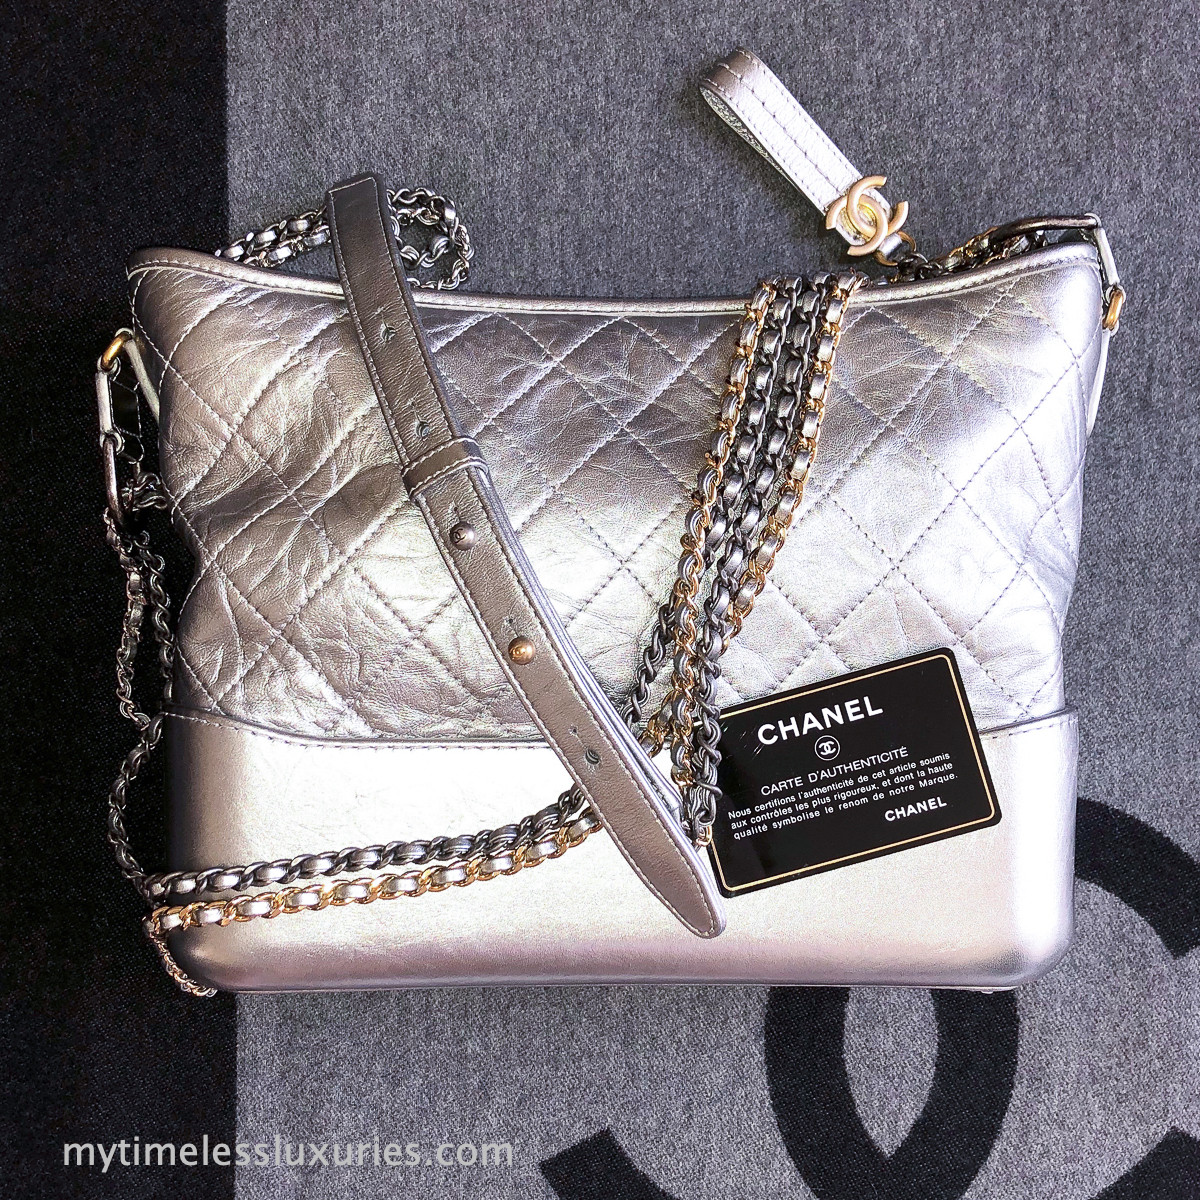 ffc20839cbaa CHANEL Medium Gabrielle Hobo Silver Aged Calf Mix Hw #24075217 ...